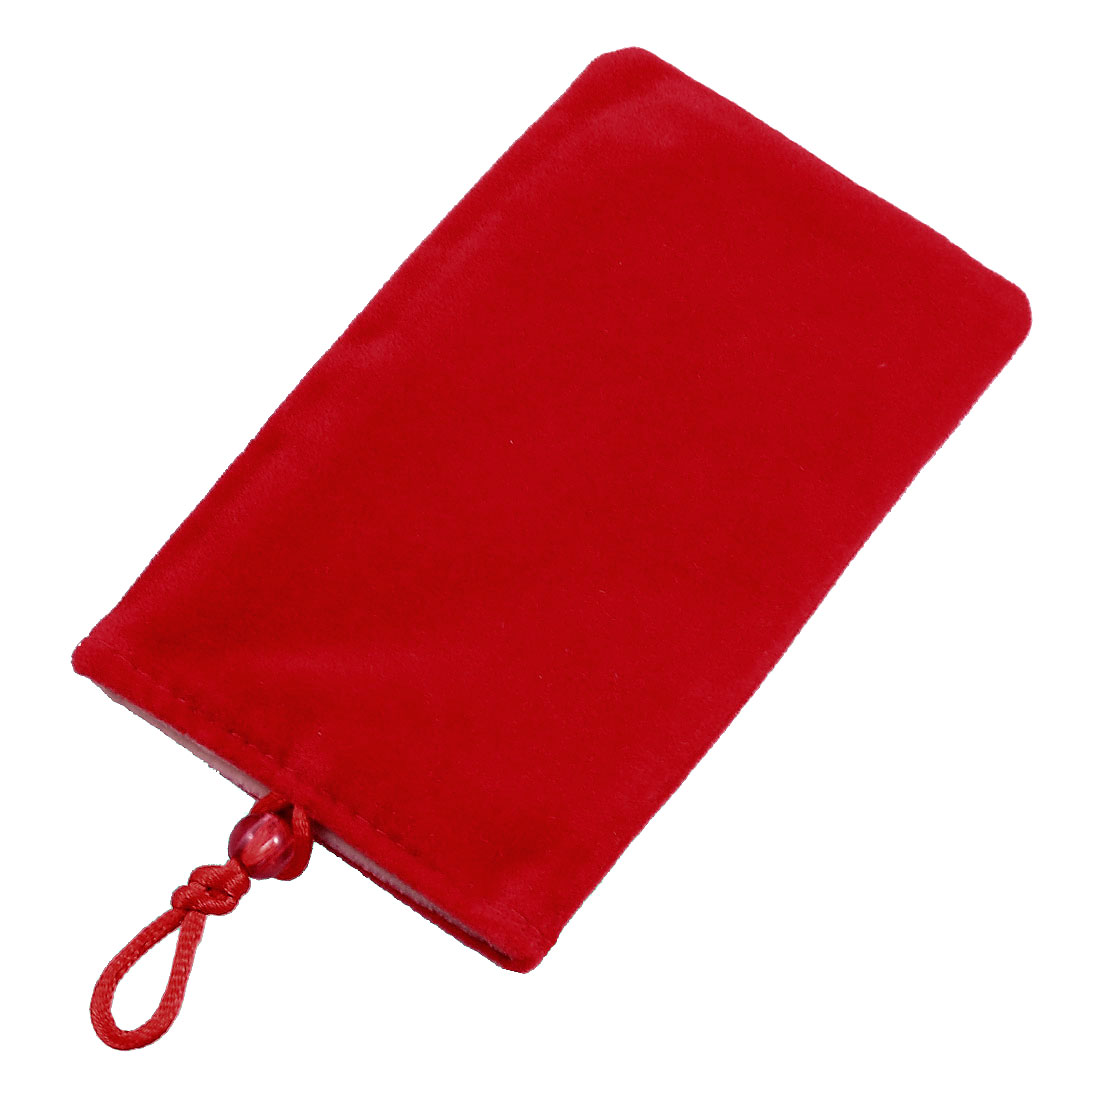 "5.3"" x 3.3"" Beige Lining Red Flannel Pouch Protector for Phone"